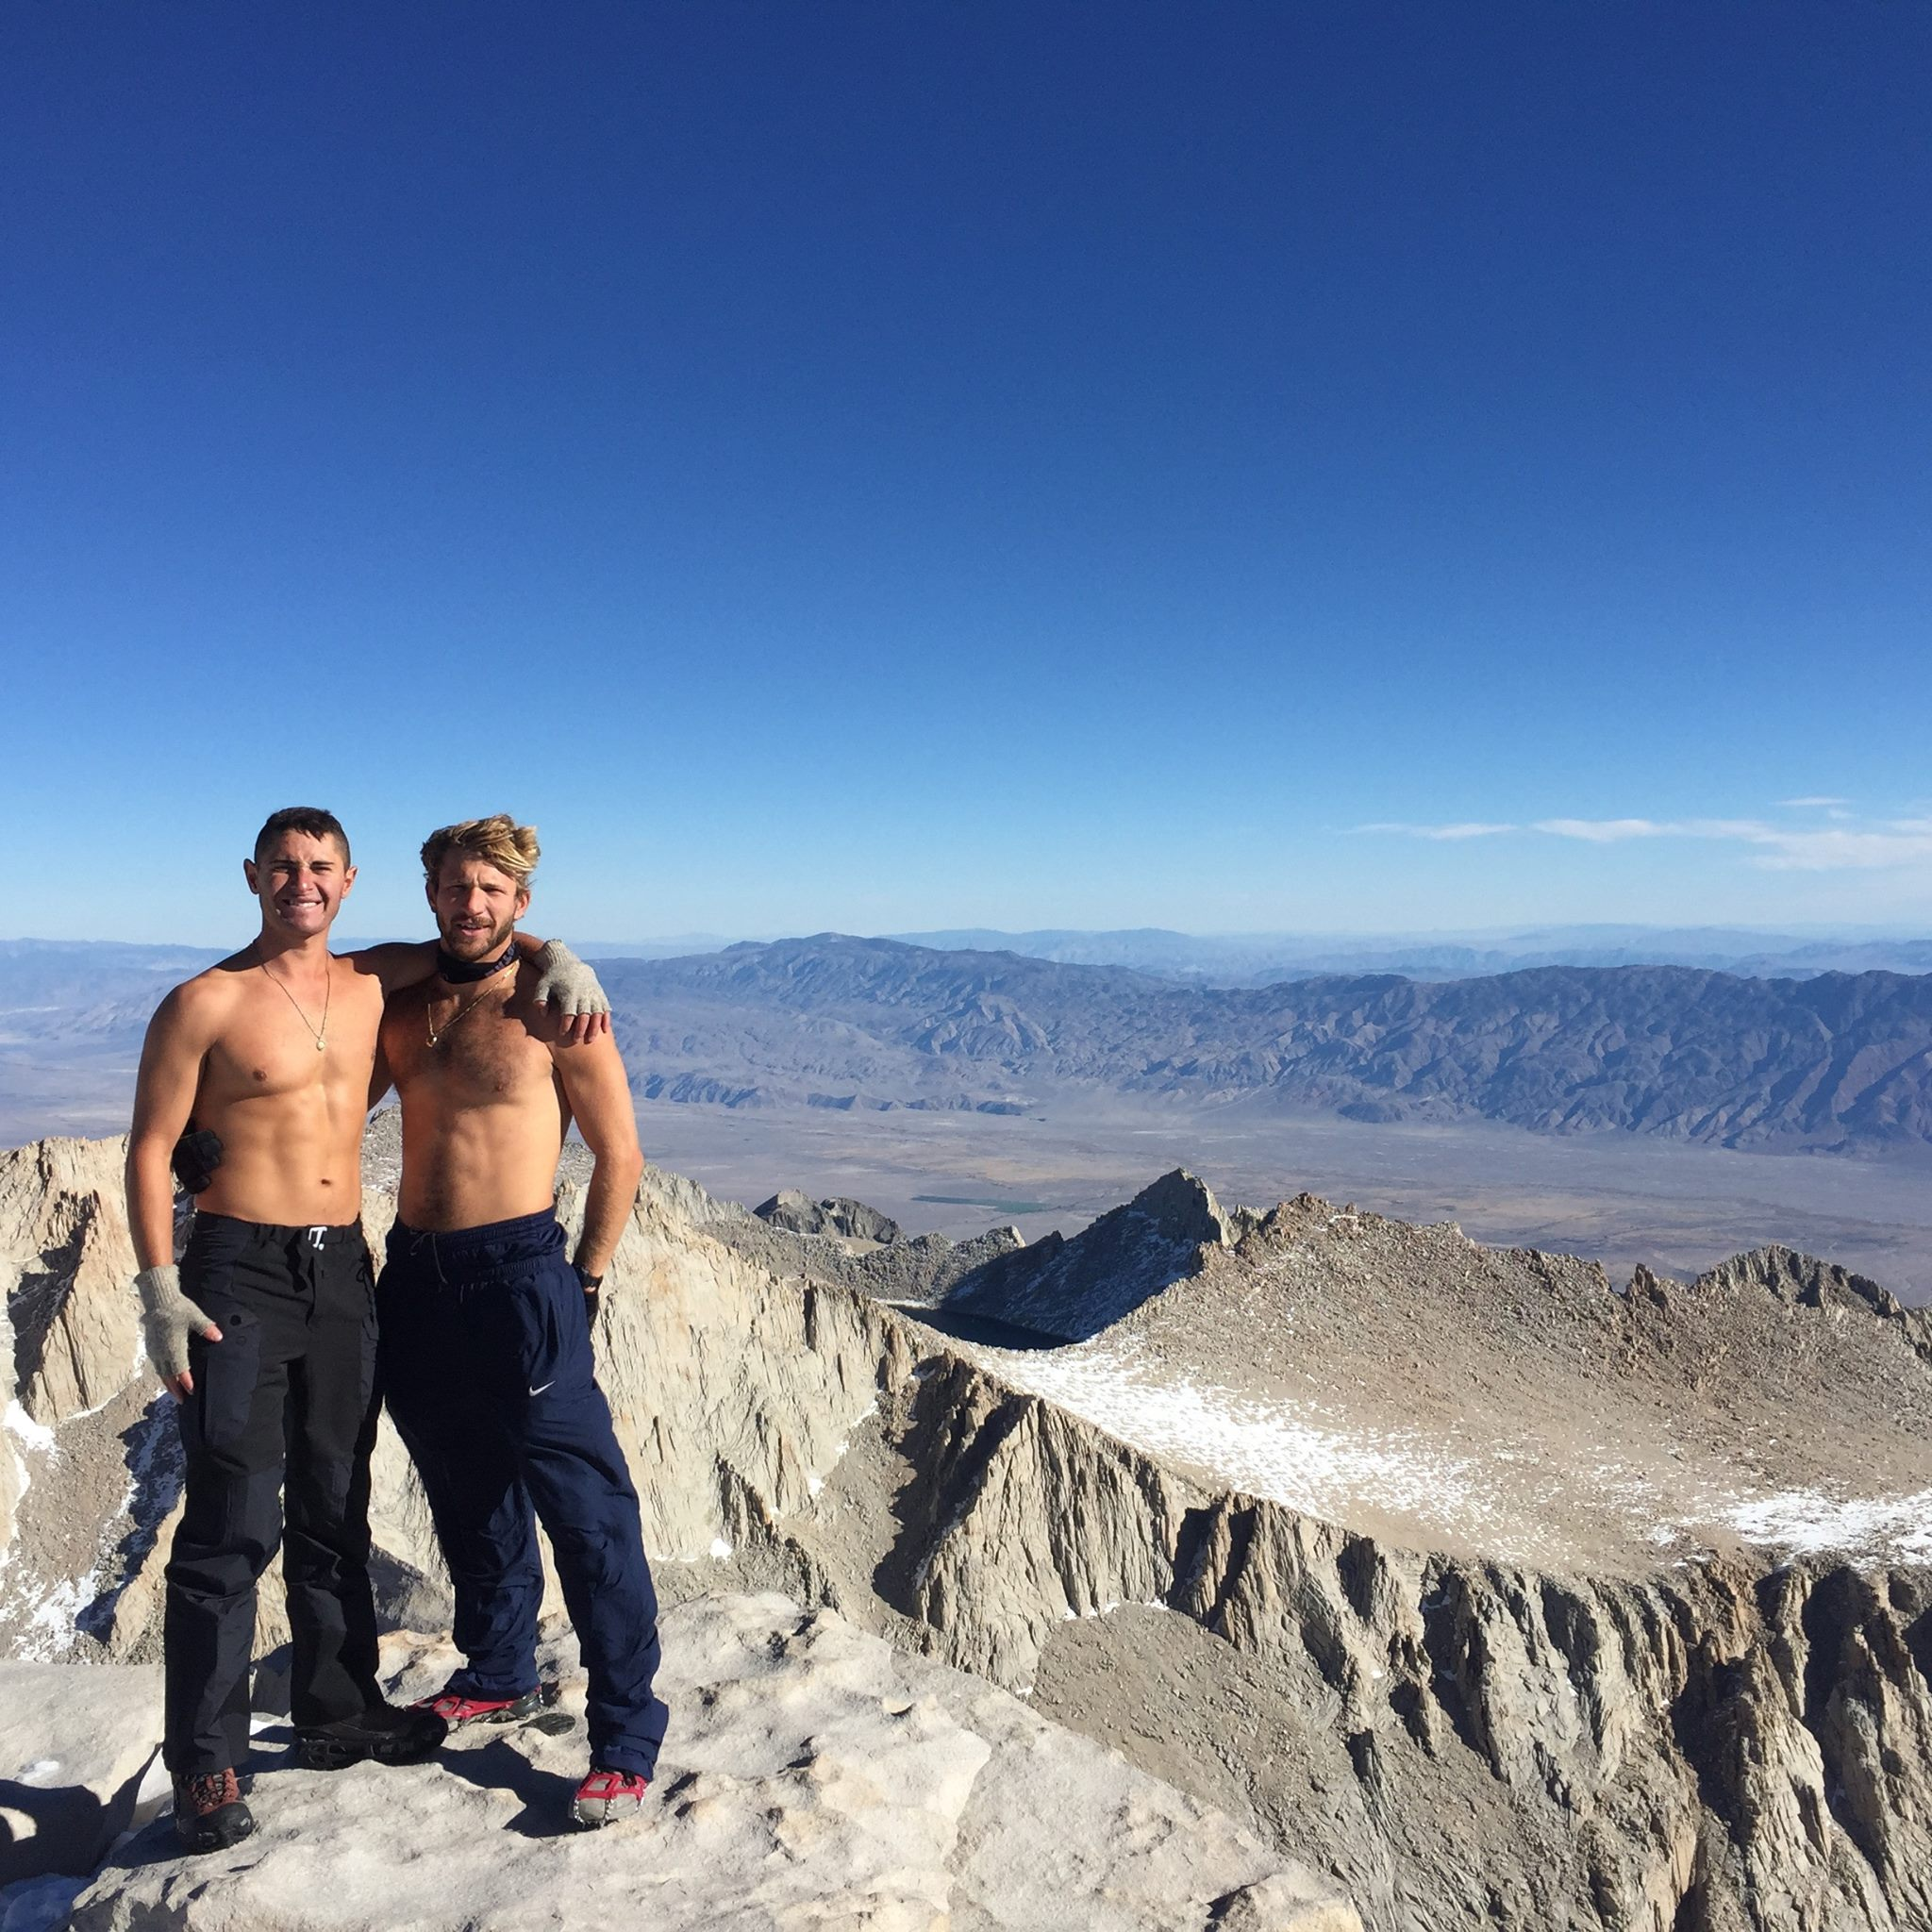 The summit of Mt Whitney a few years ago. Seeing myself as a dreamer that DOES. A good friend of mine Jesse Aston and I take a pic amidst the snow without shirts on. Being goofballs as usual.